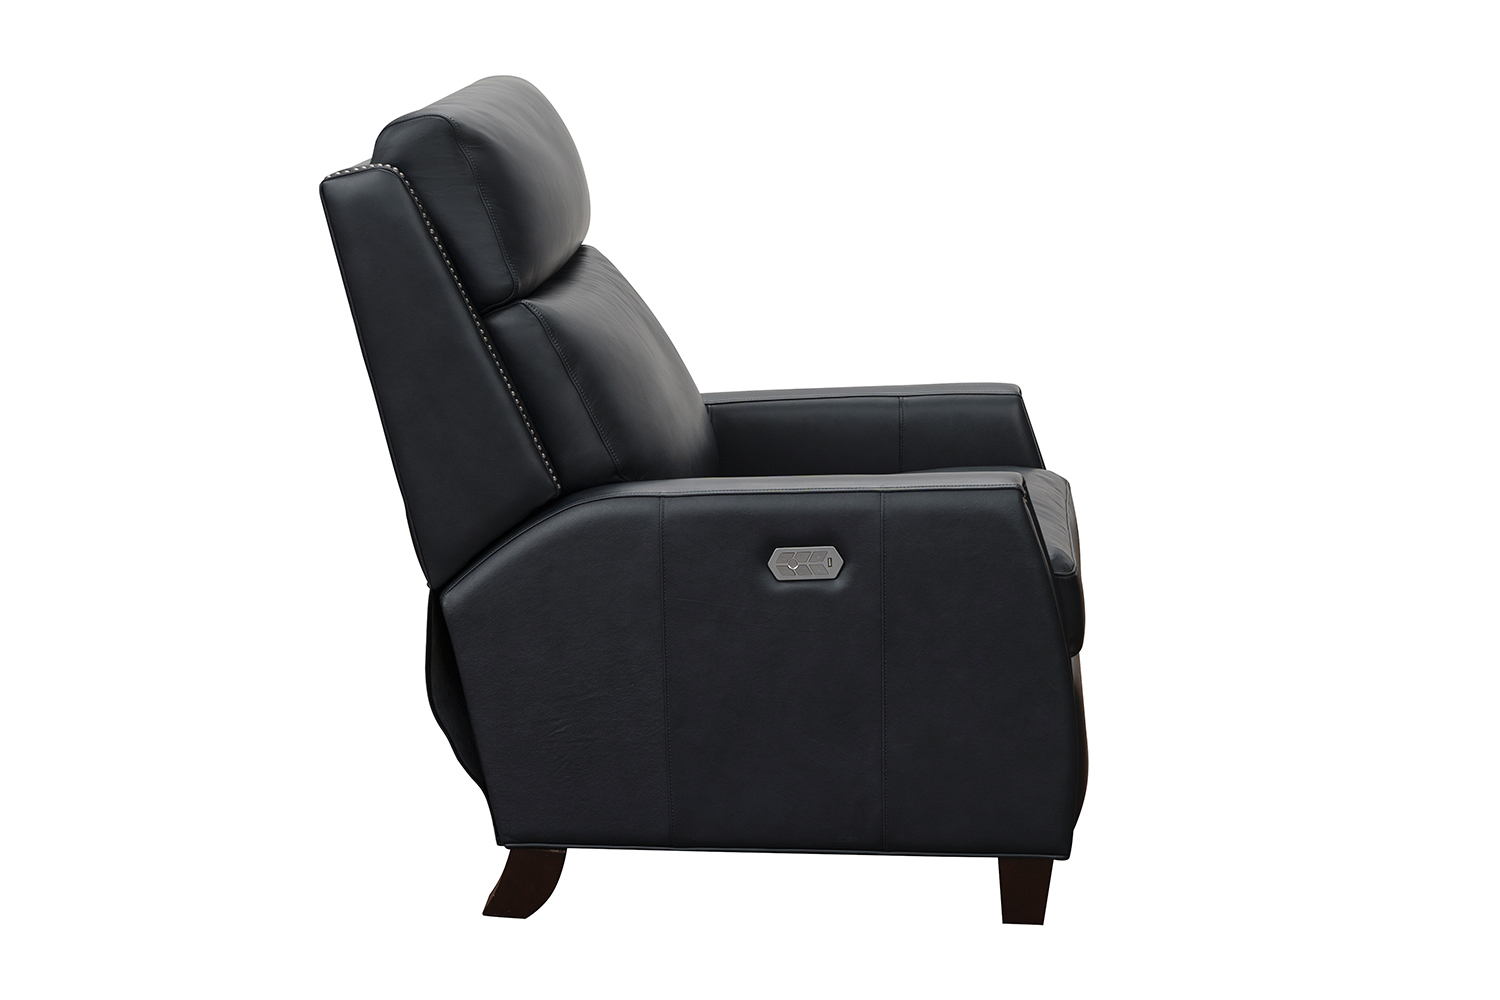 Barcalounger Anaheim Big and Tall Power Recliner Chair with Power Head Rest and Lumbar - Shoreham Blue/All Leather